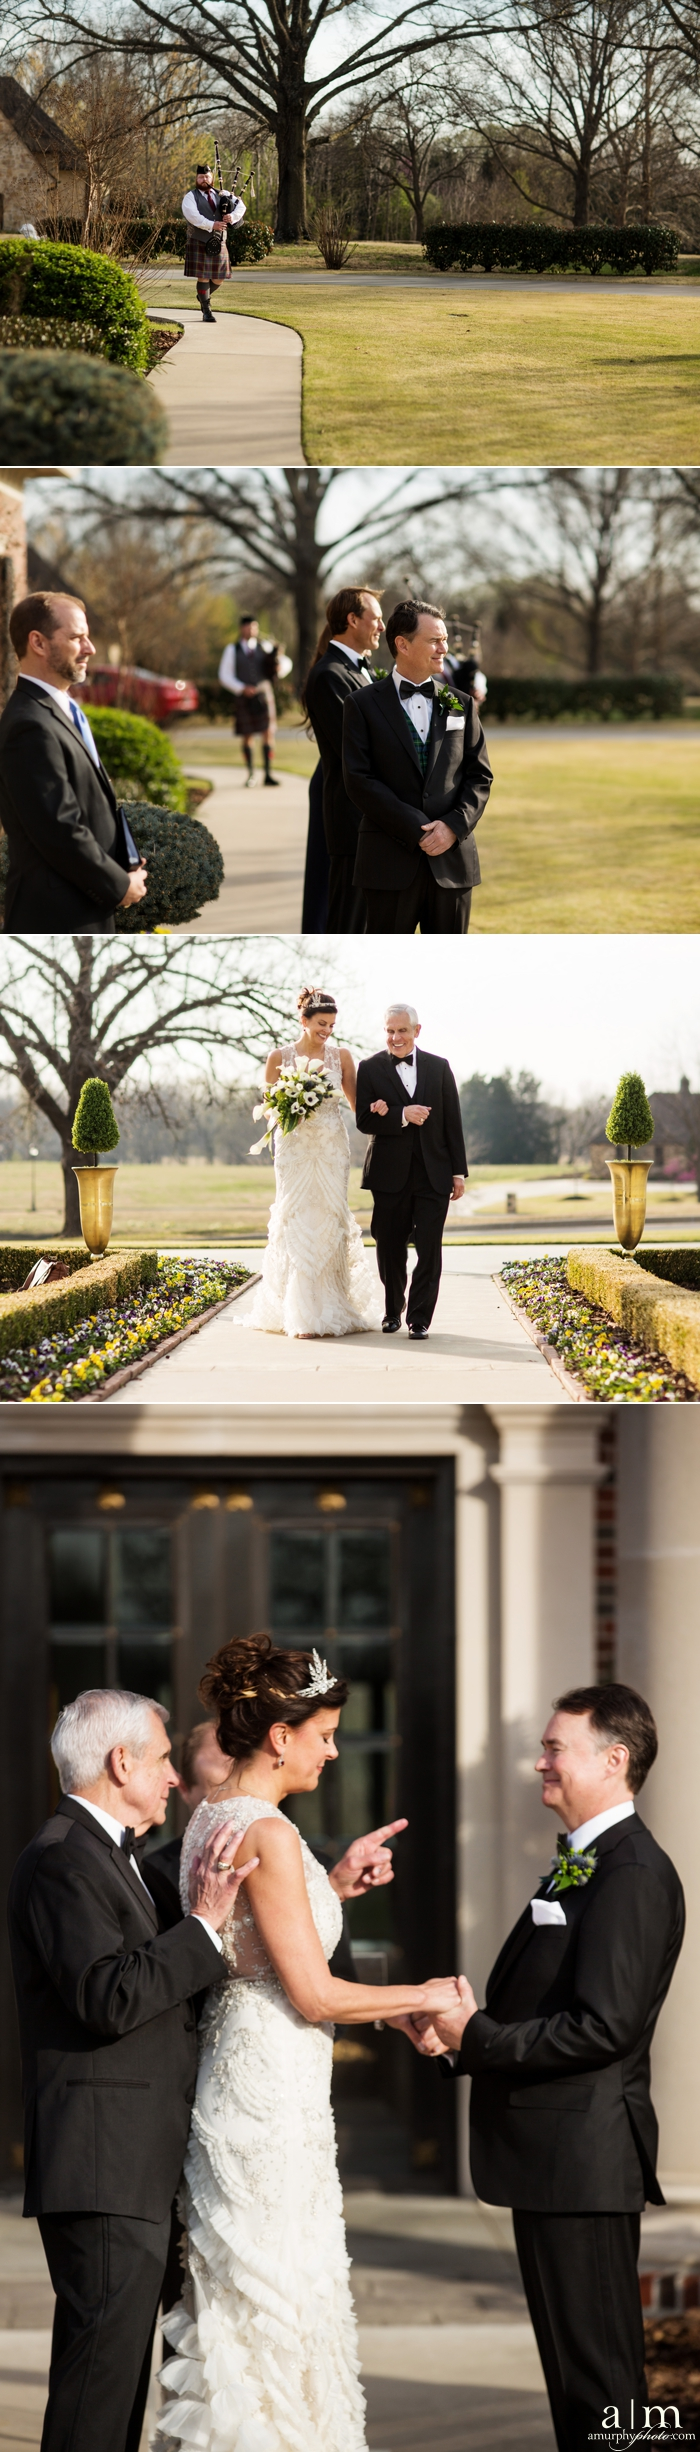 Bartlesville Wedding 5.jpg